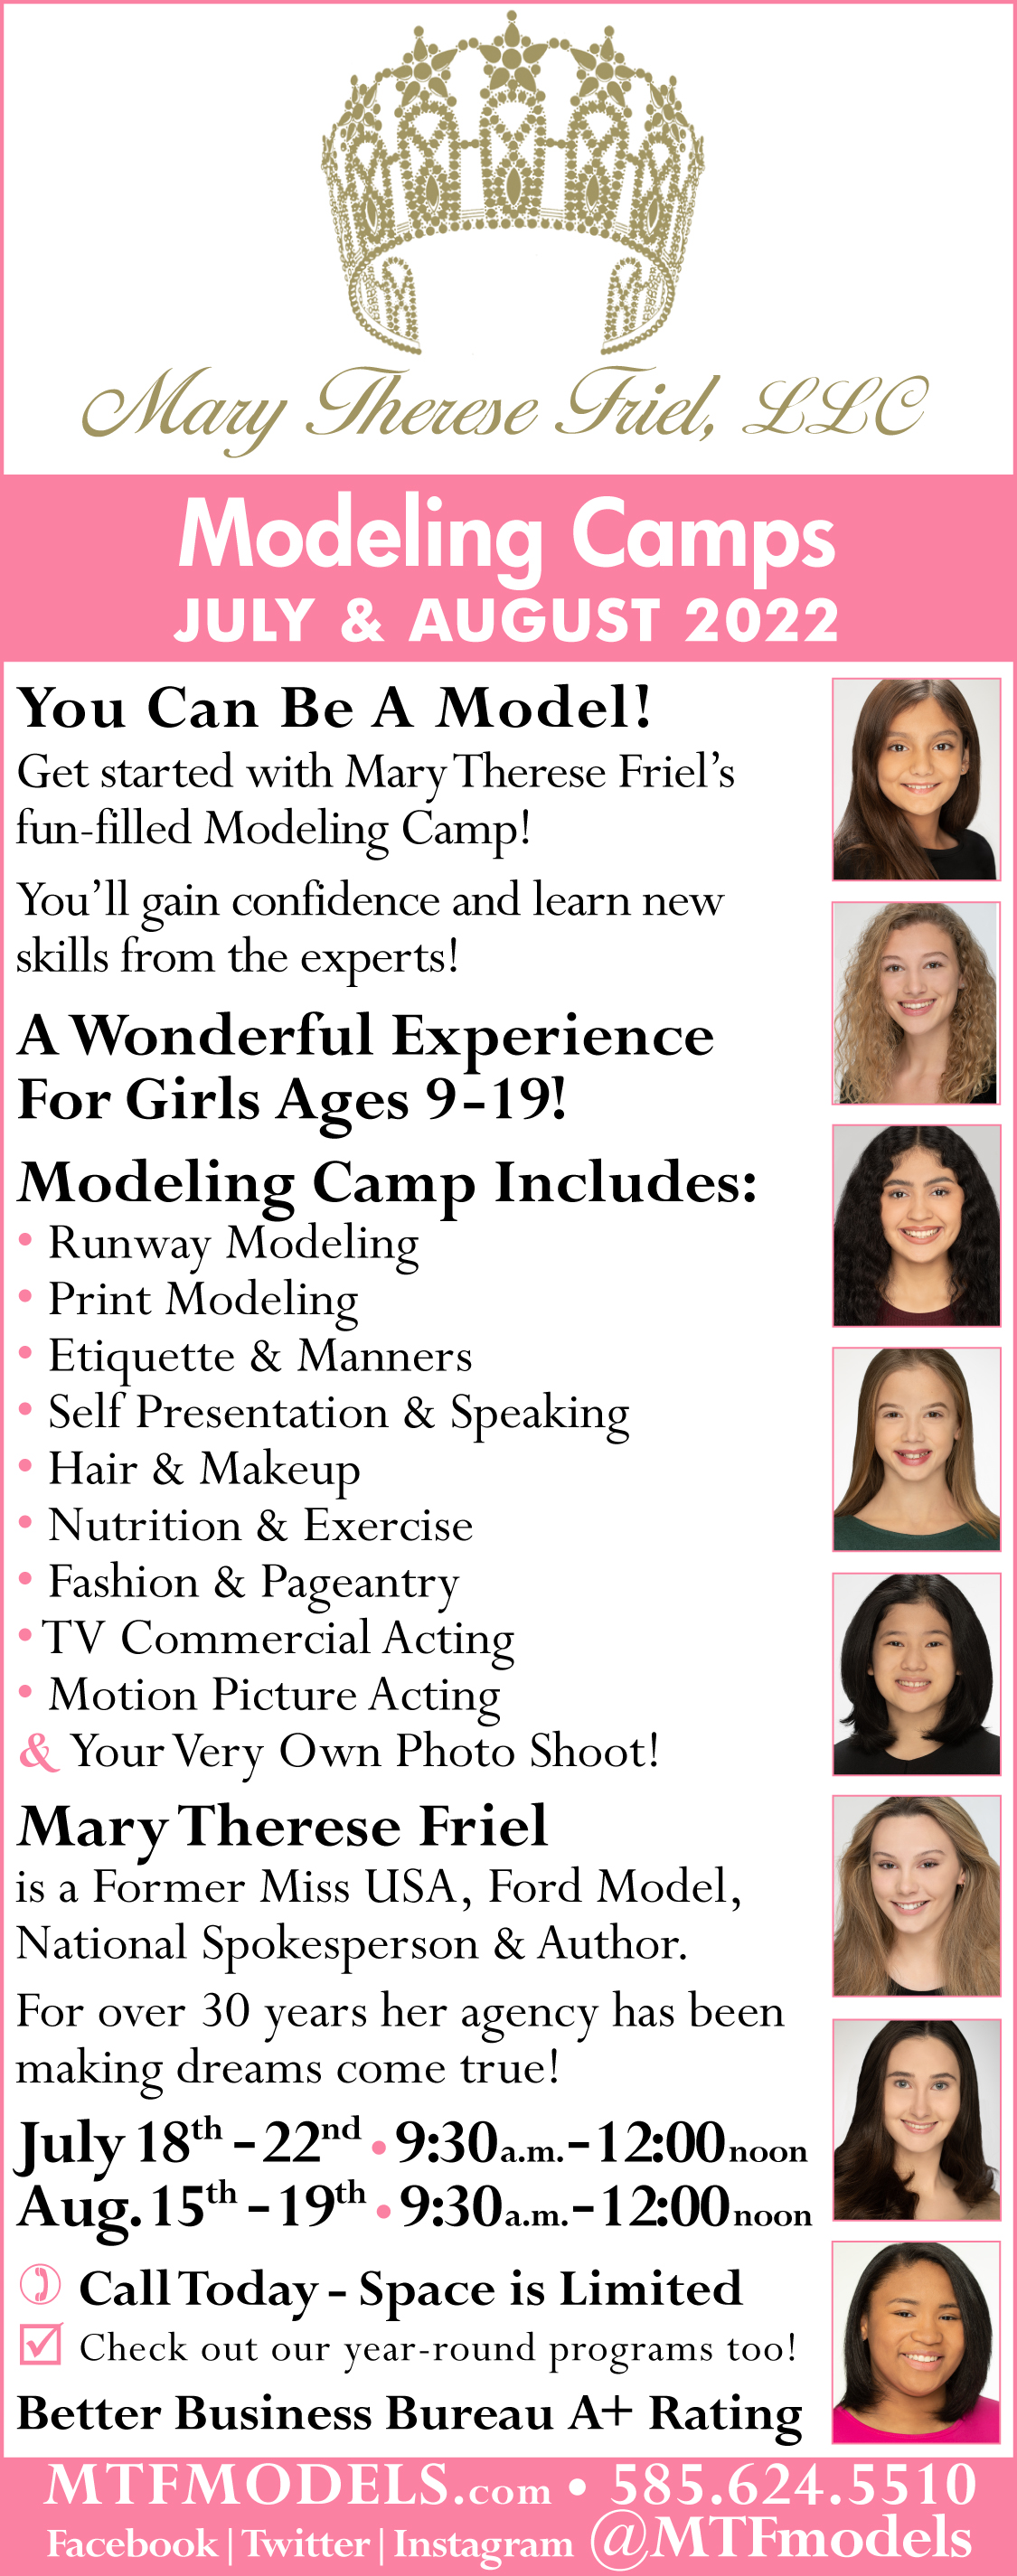 2016 Modeling Camp in Rochester NY at Mary Therese Friel, LLC